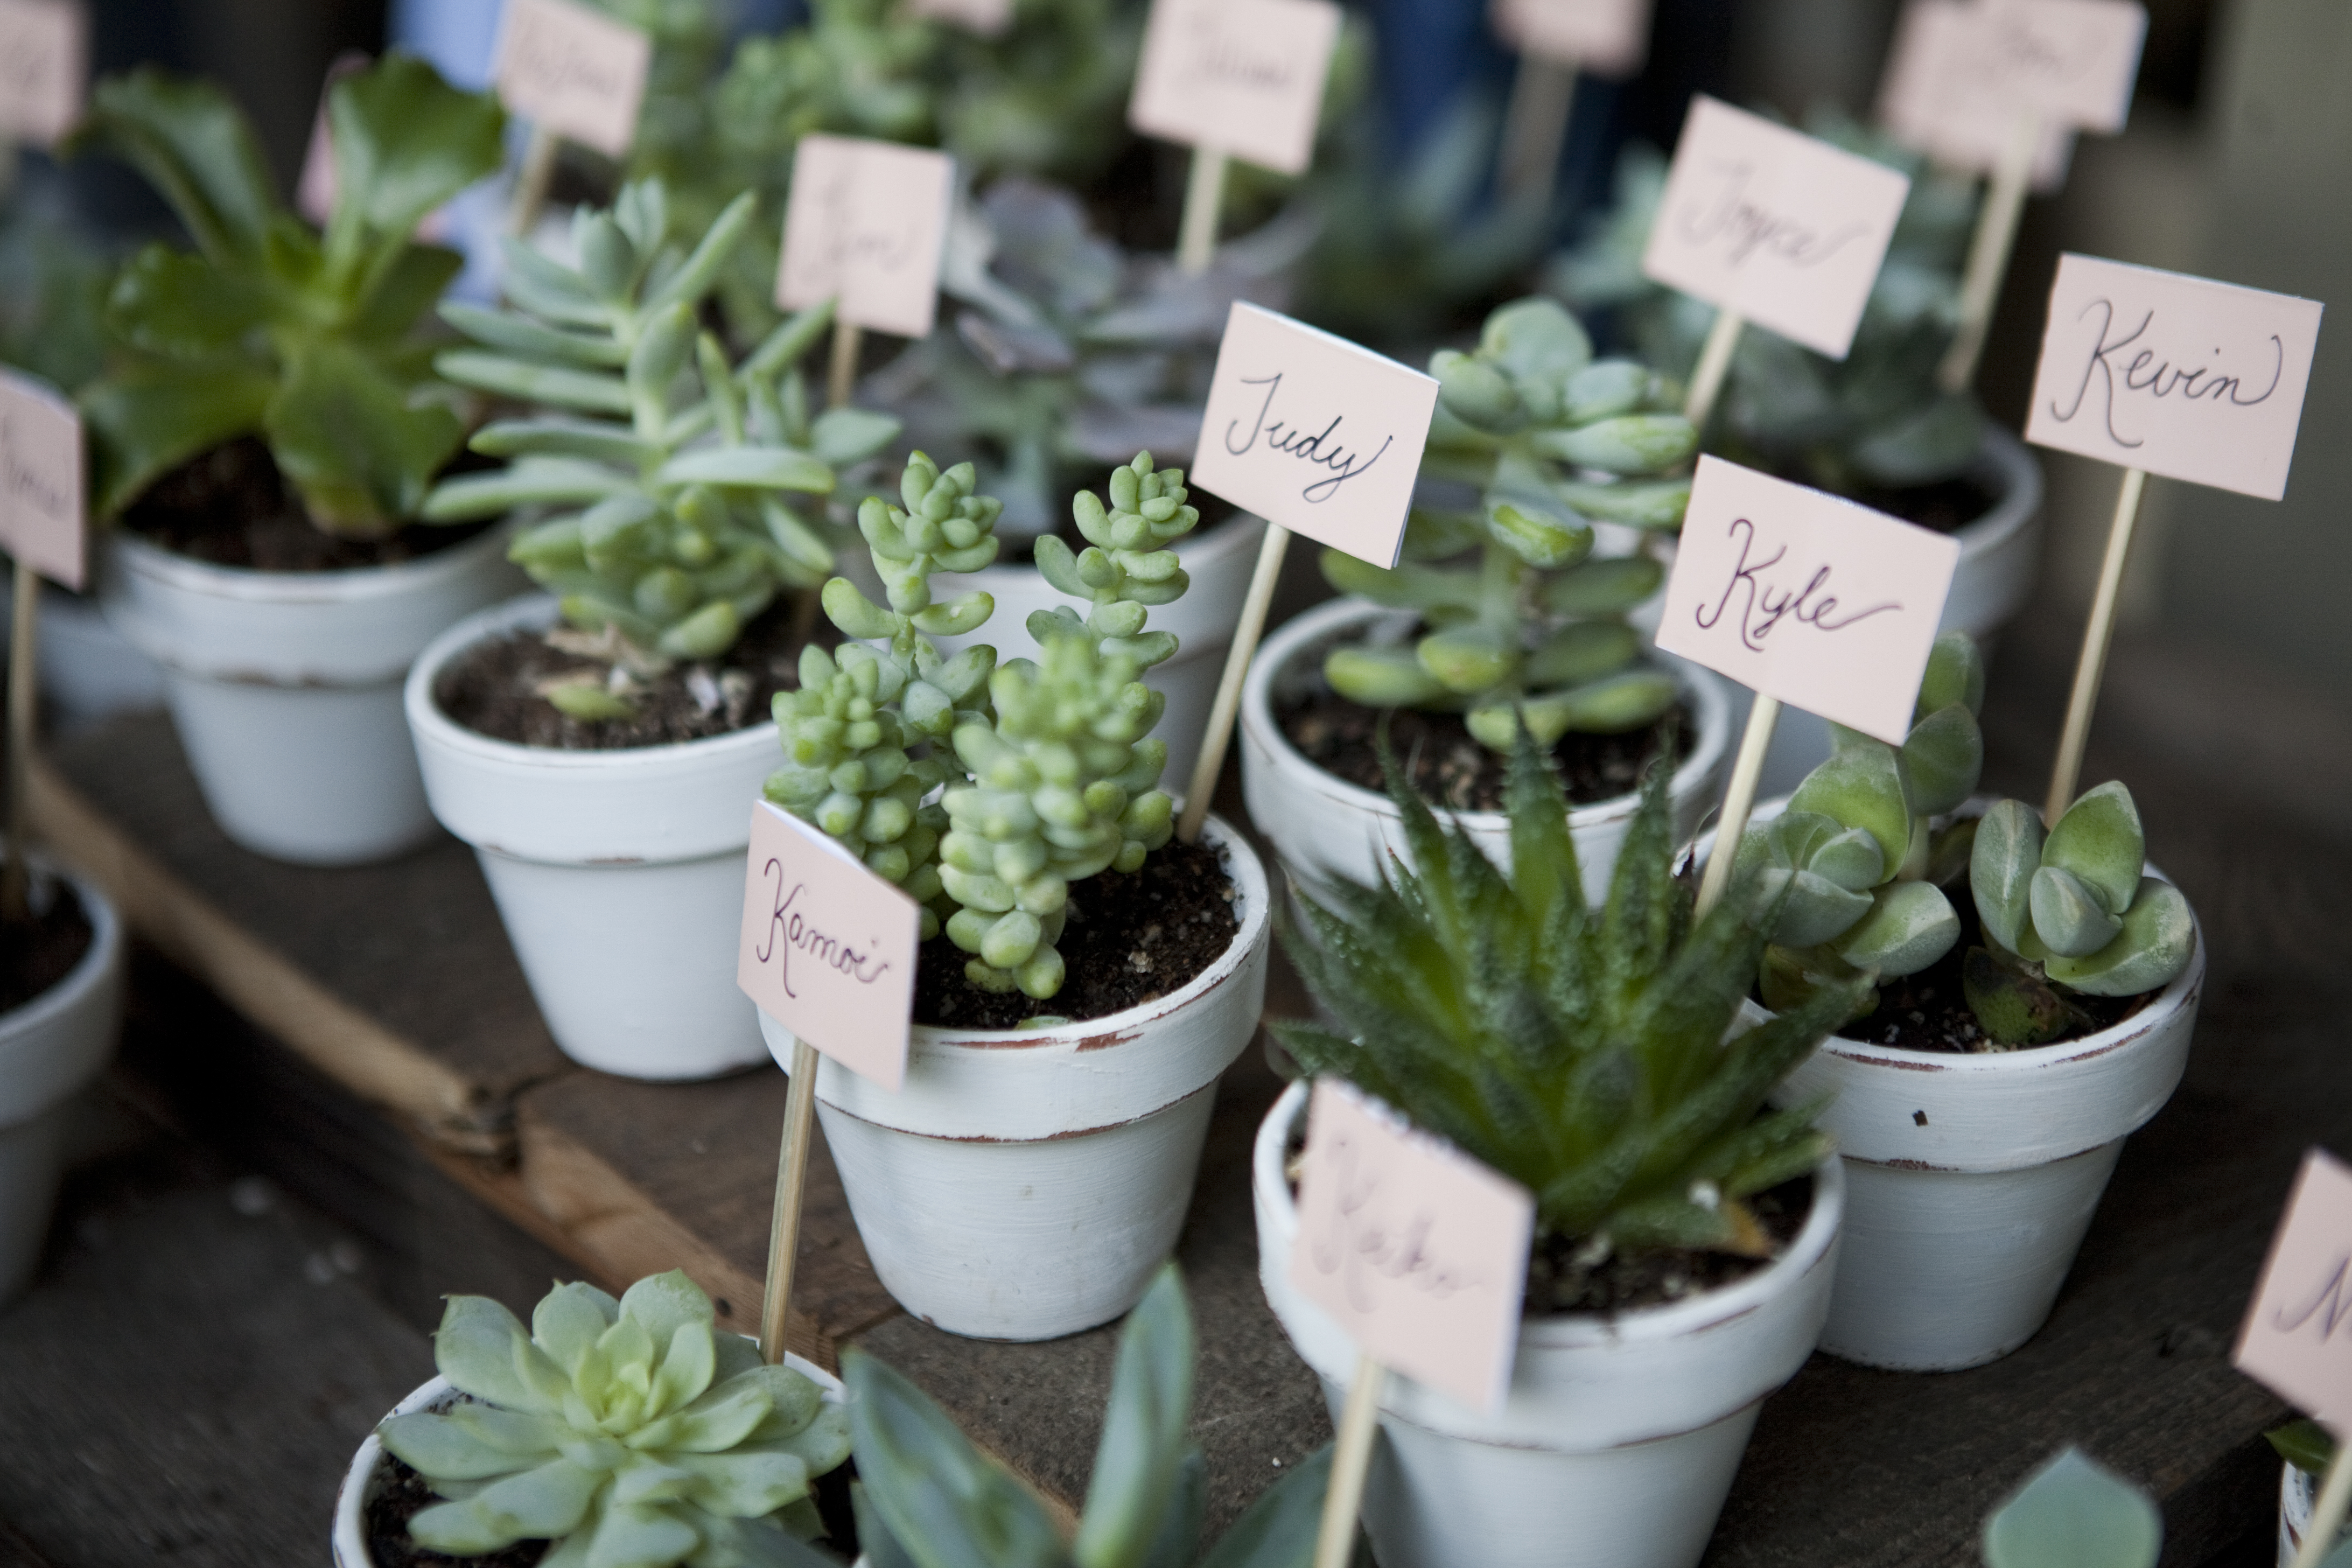 A variety of succulent wedding favors with name tags.